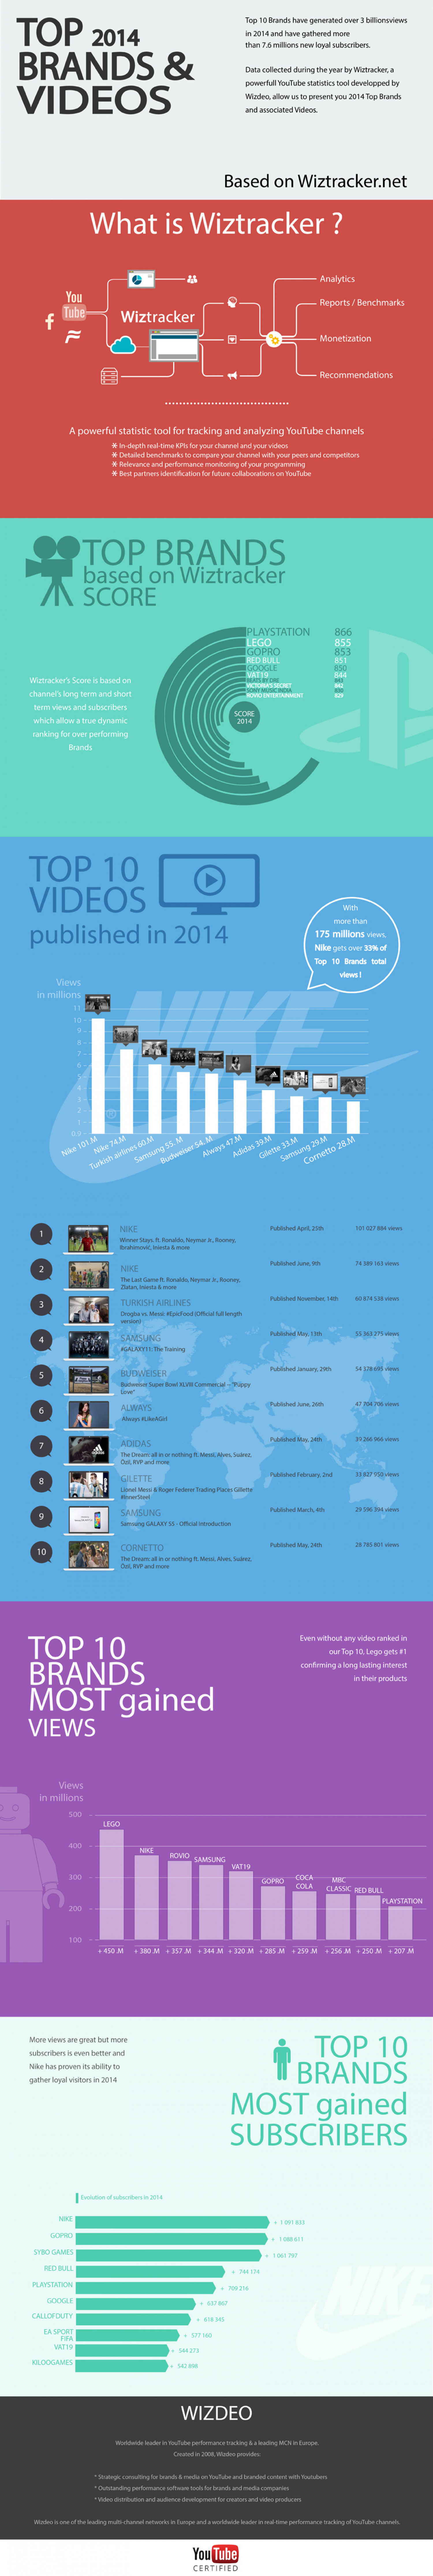 2014 Top Brands & Videos Infographic